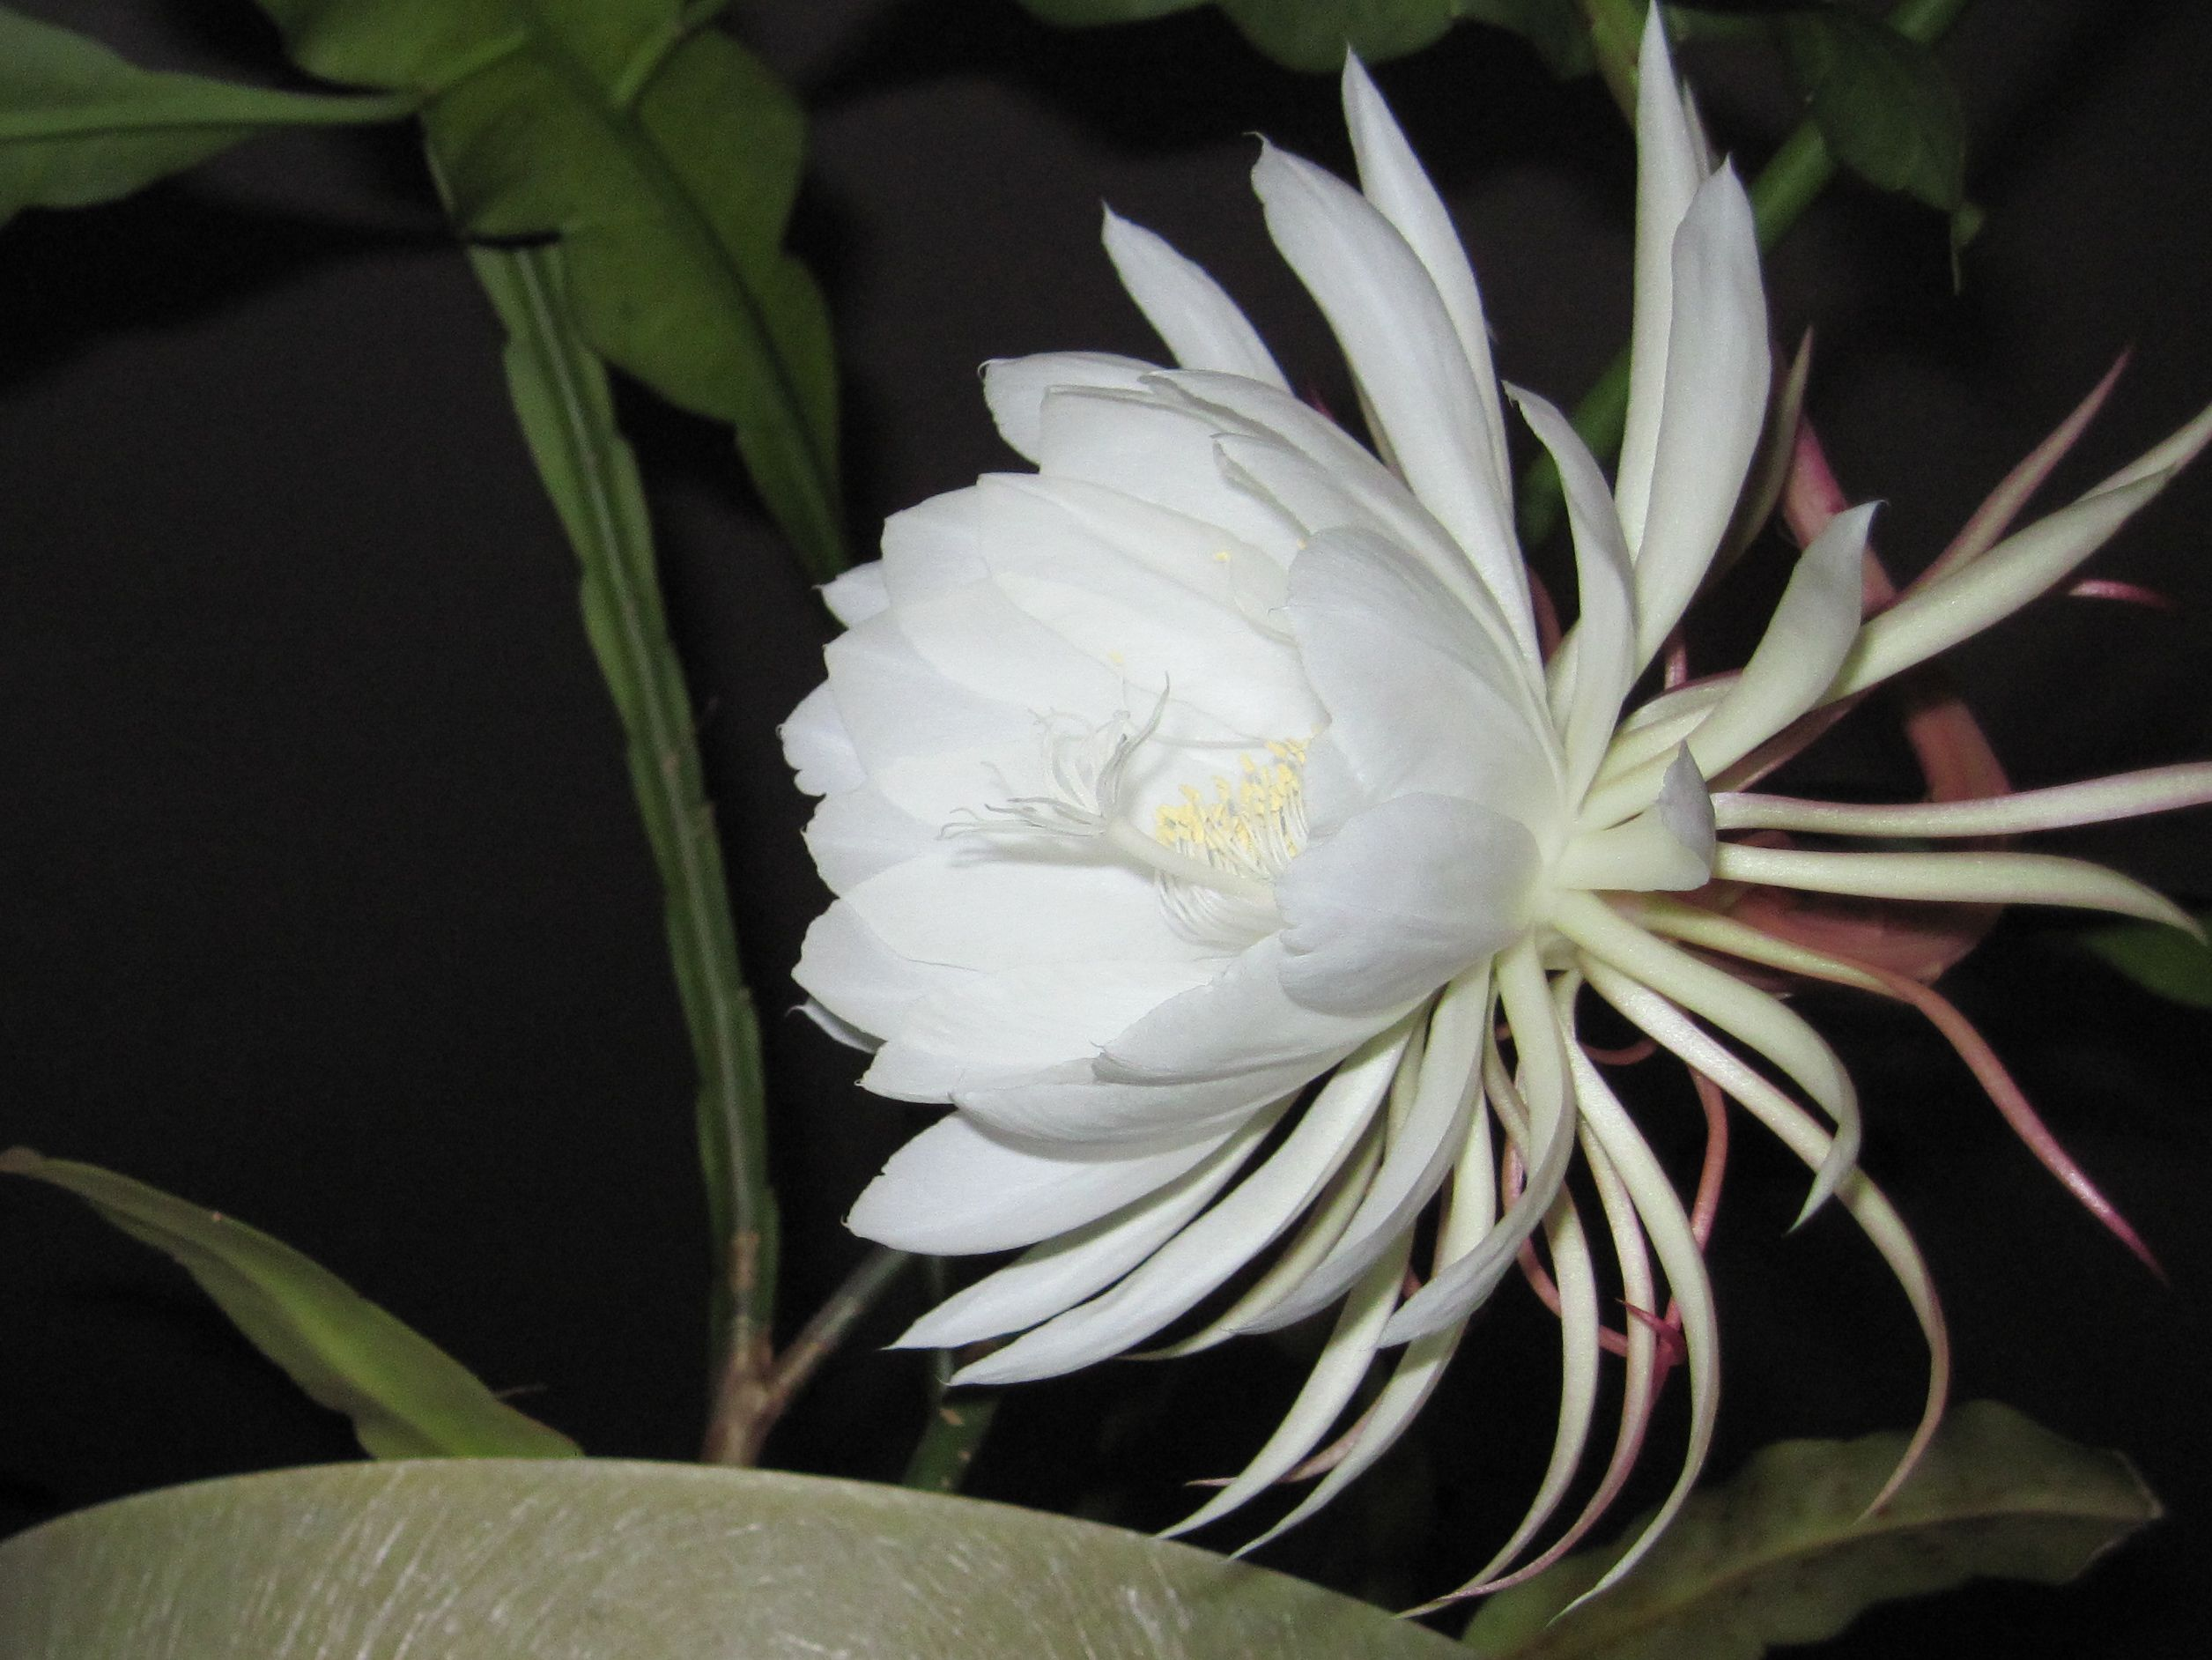 Night blooming cereus traditions of night blooming parties at lewis ginter botanical garden - Flowers that bloom only at night ...